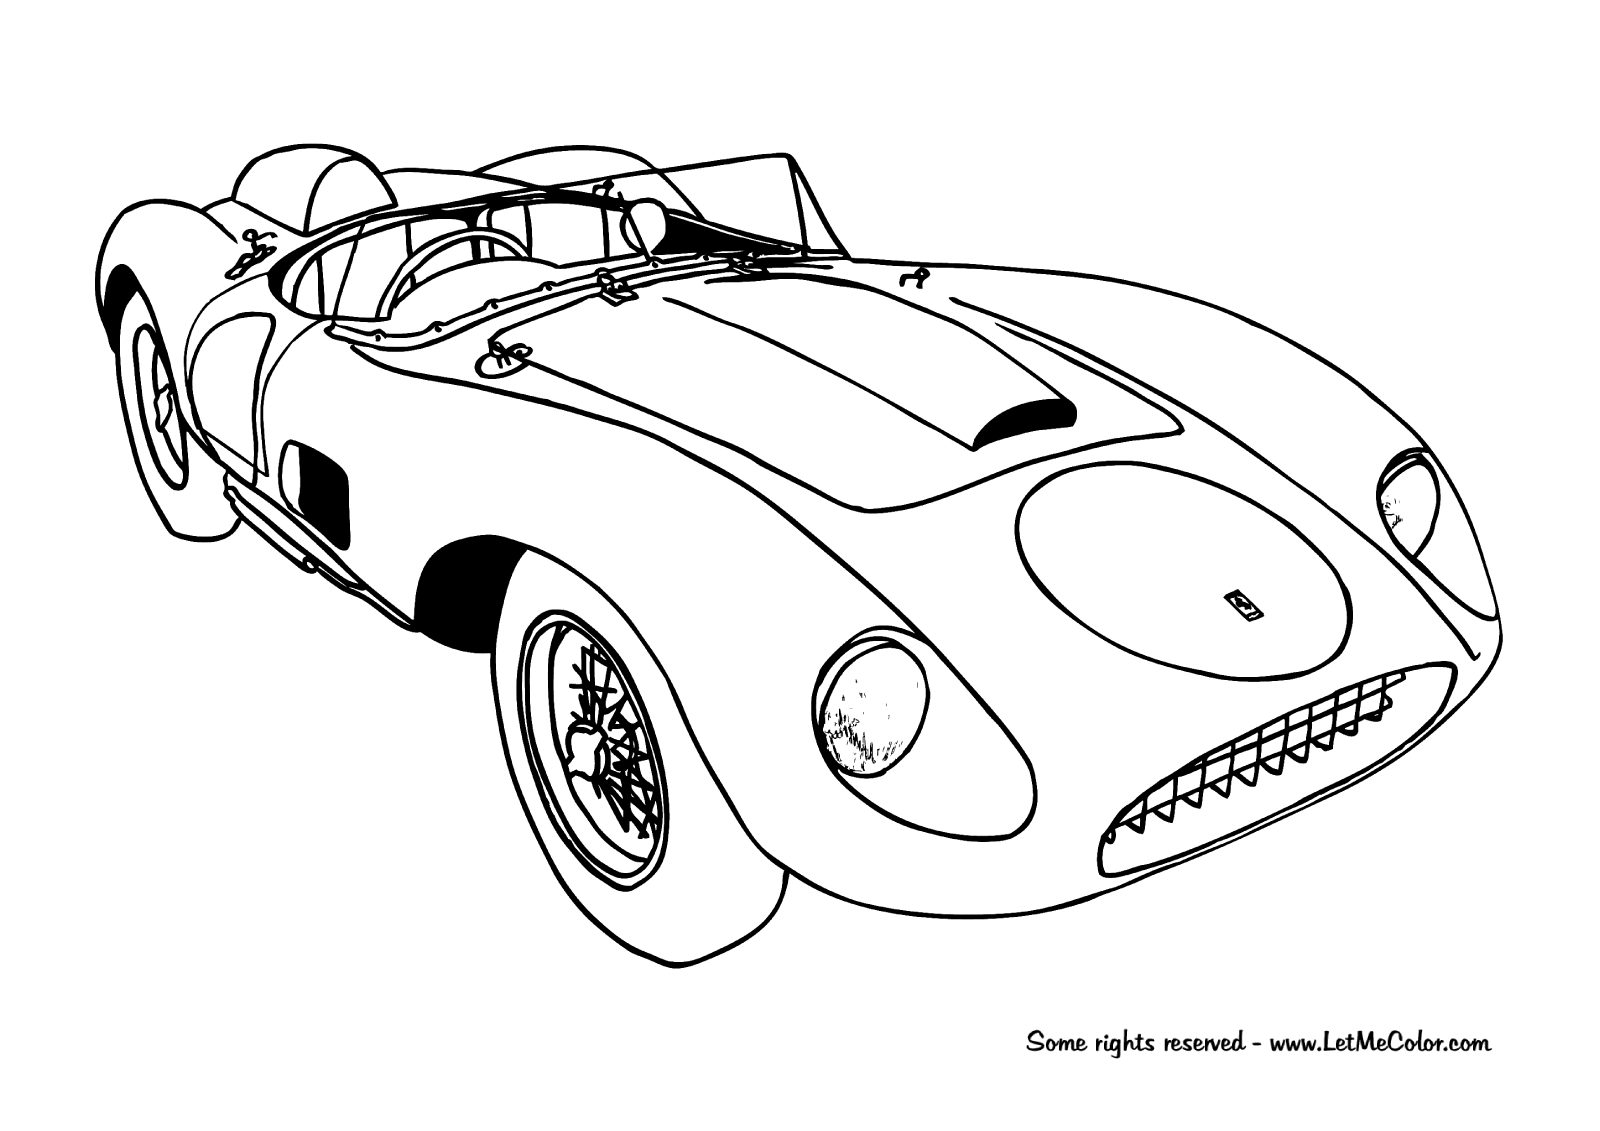 coloring pages of cars free printable race car coloring pages for kids cars pages of coloring